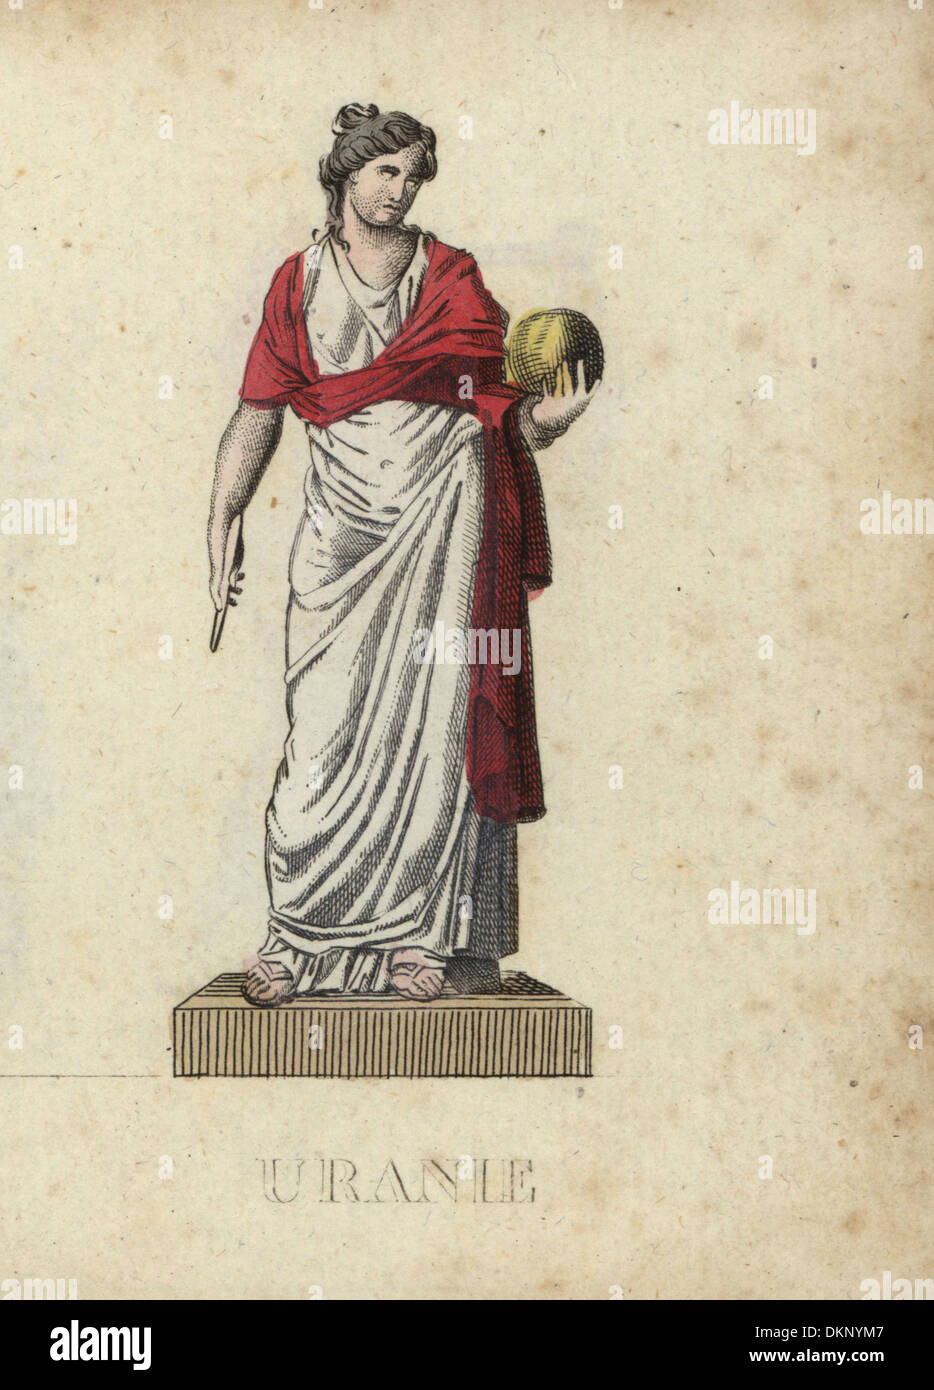 Urania, Greek muse of astronomy, with globe and compass. - Stock Image